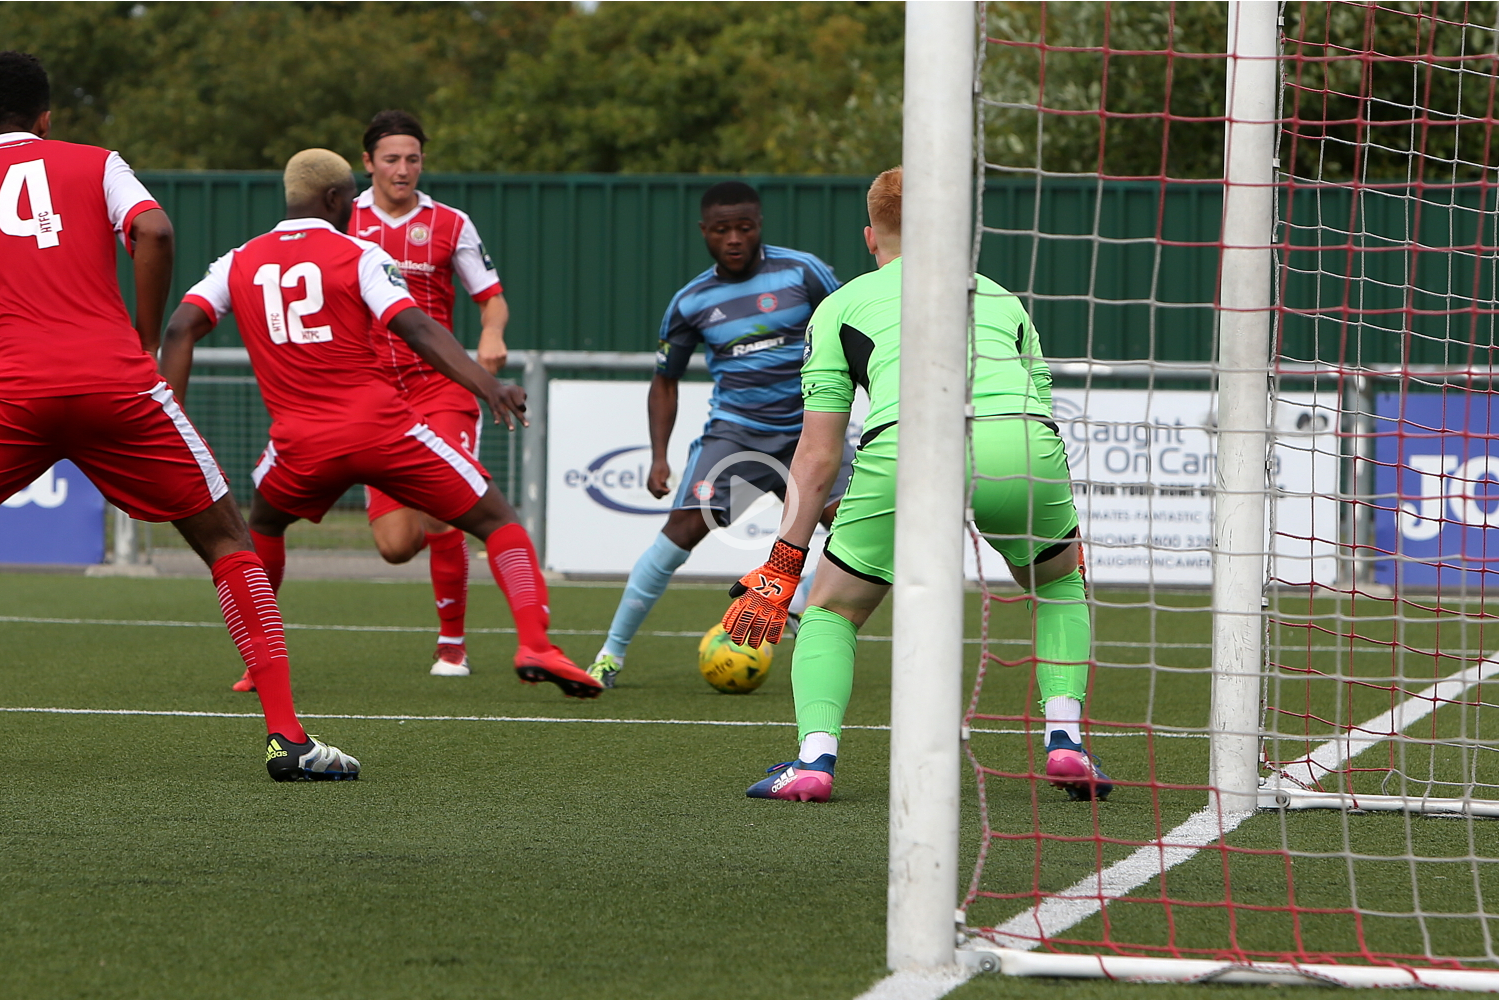 Read the full article - HIGHLIGHTS: Harlow 0-2 Worthing [A] – League